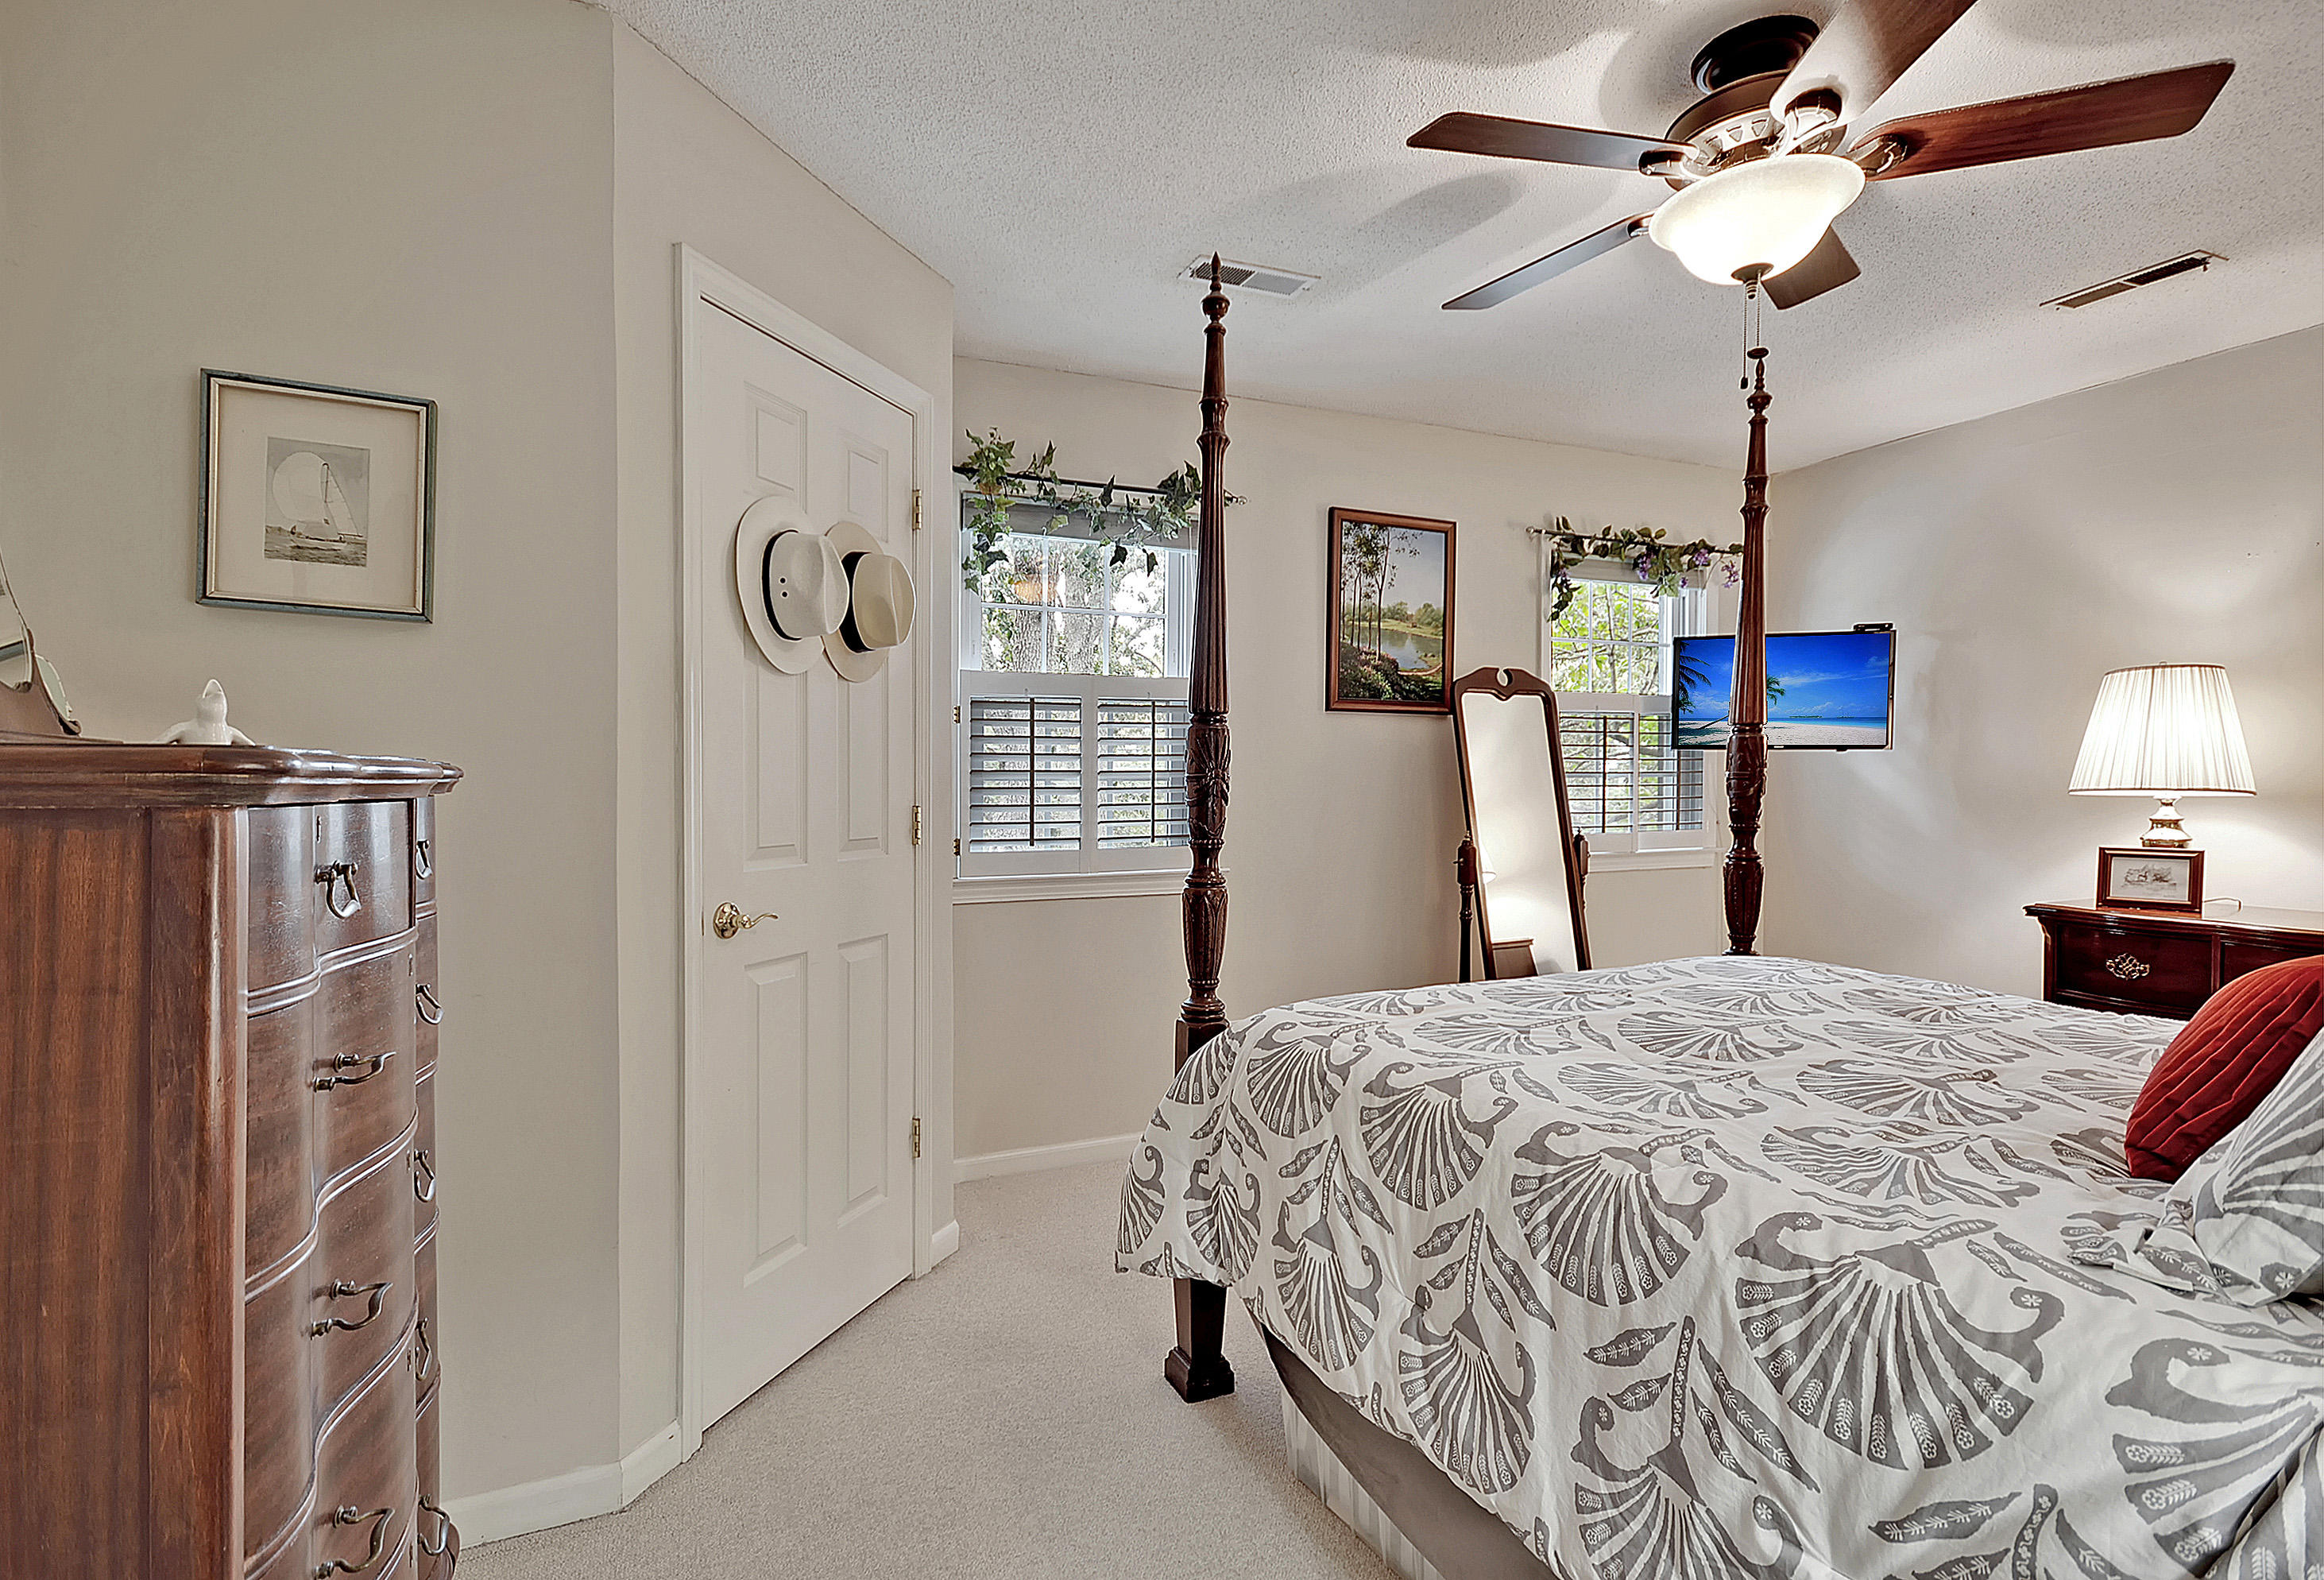 South of Broad Homes For Sale - 0 Rutledge, Charleston, SC - 25